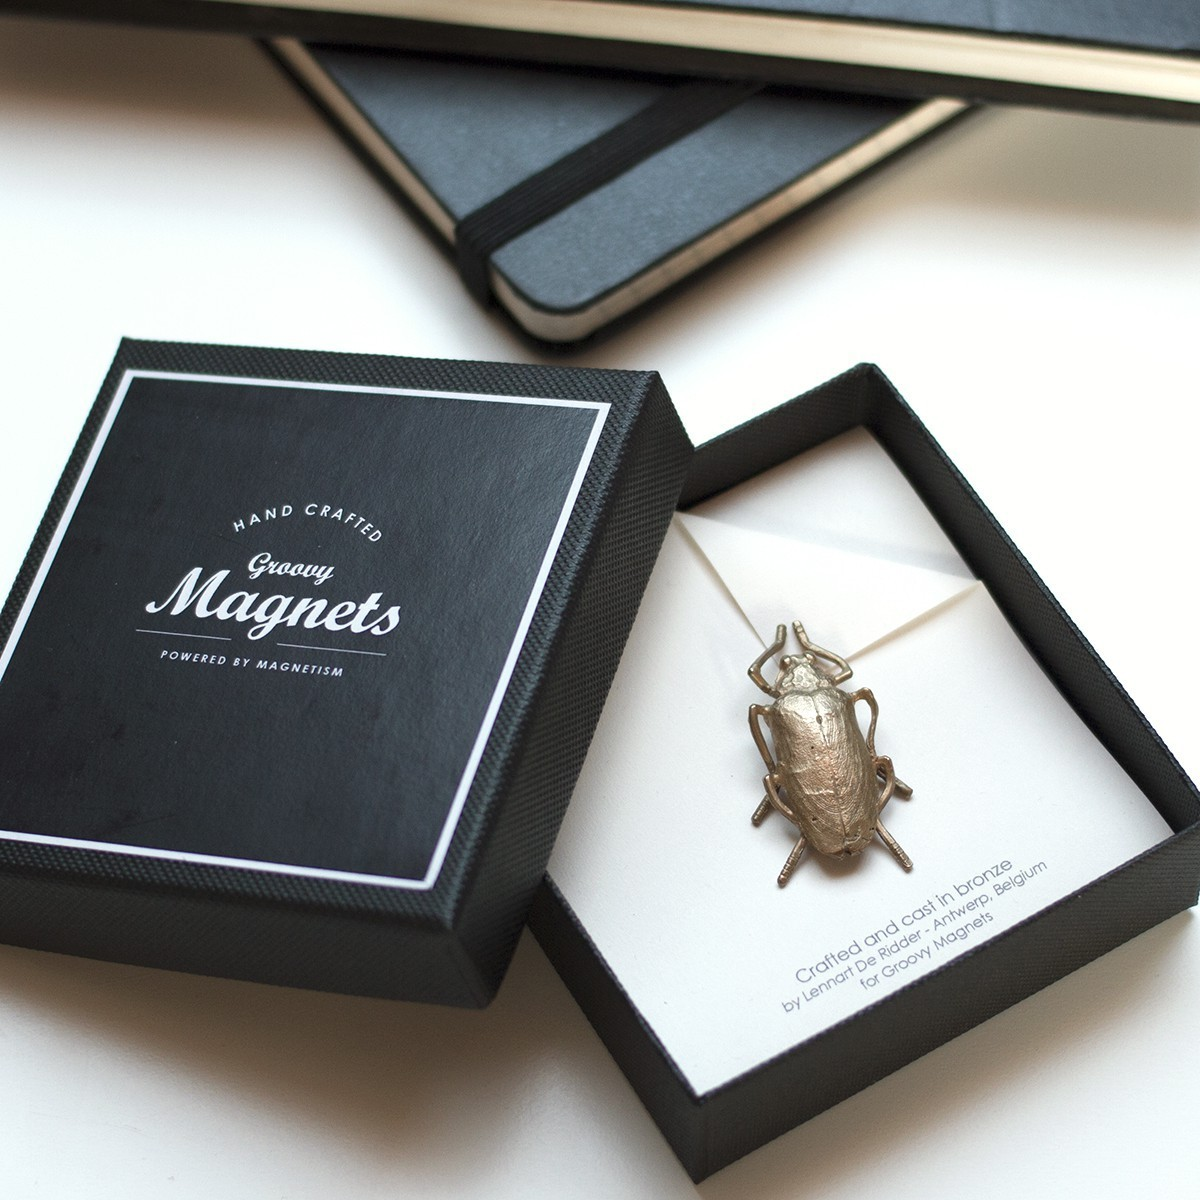 Indie Beetle, perfect match between design and craftsmanship, by Groovy Magnets